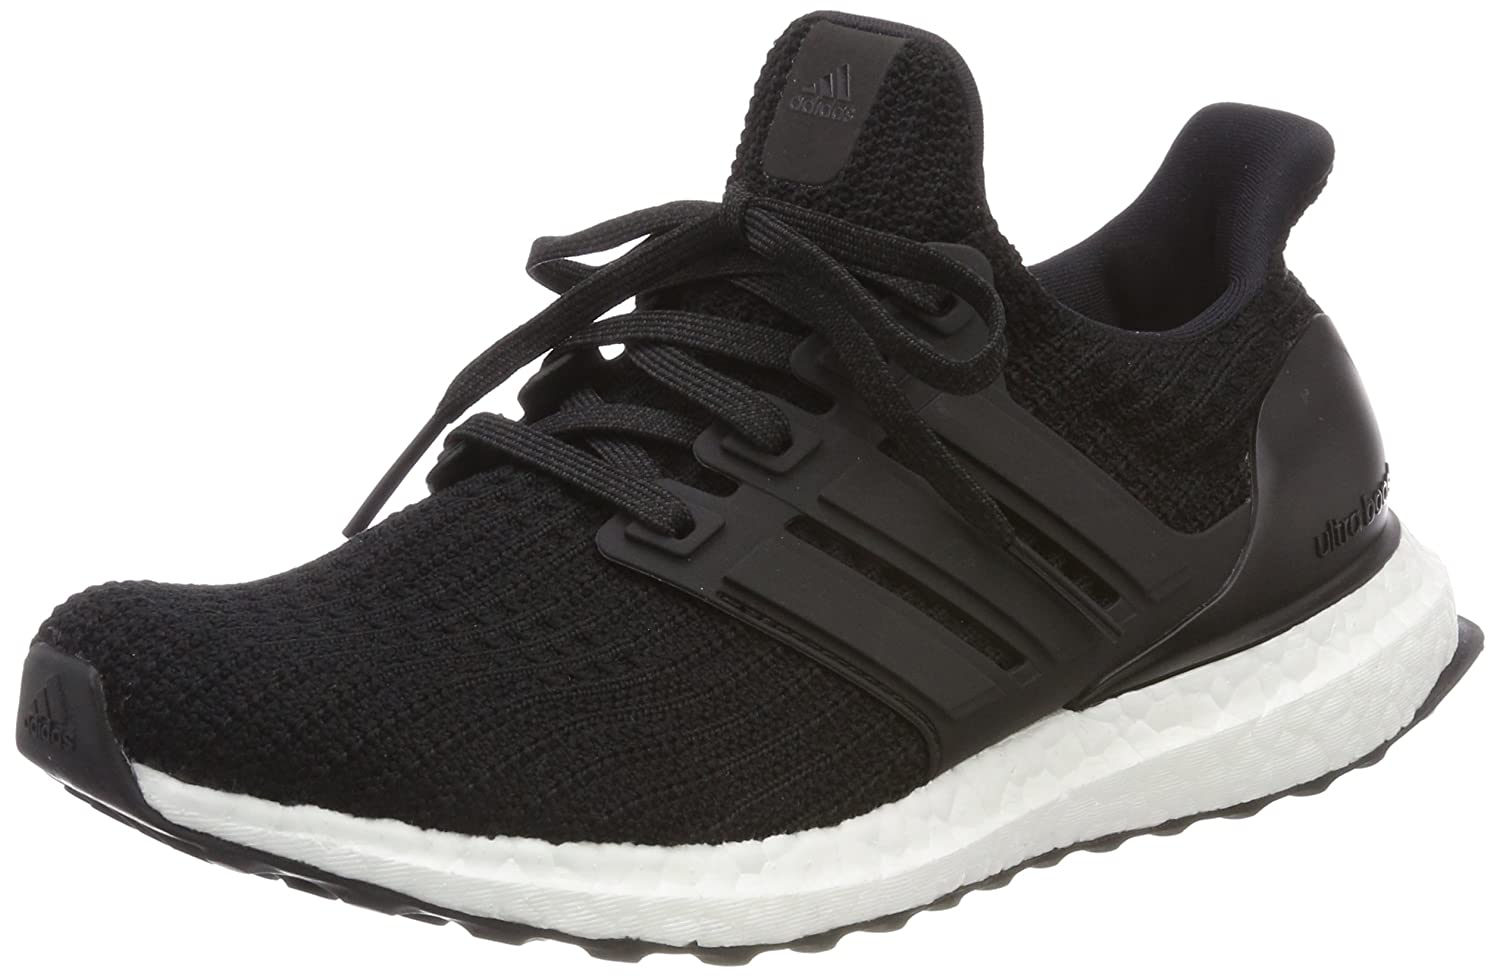 aac4044f2 adidas Women s Ultraboost W Running Shoes  Amazon.co.uk  Shoes   Bags